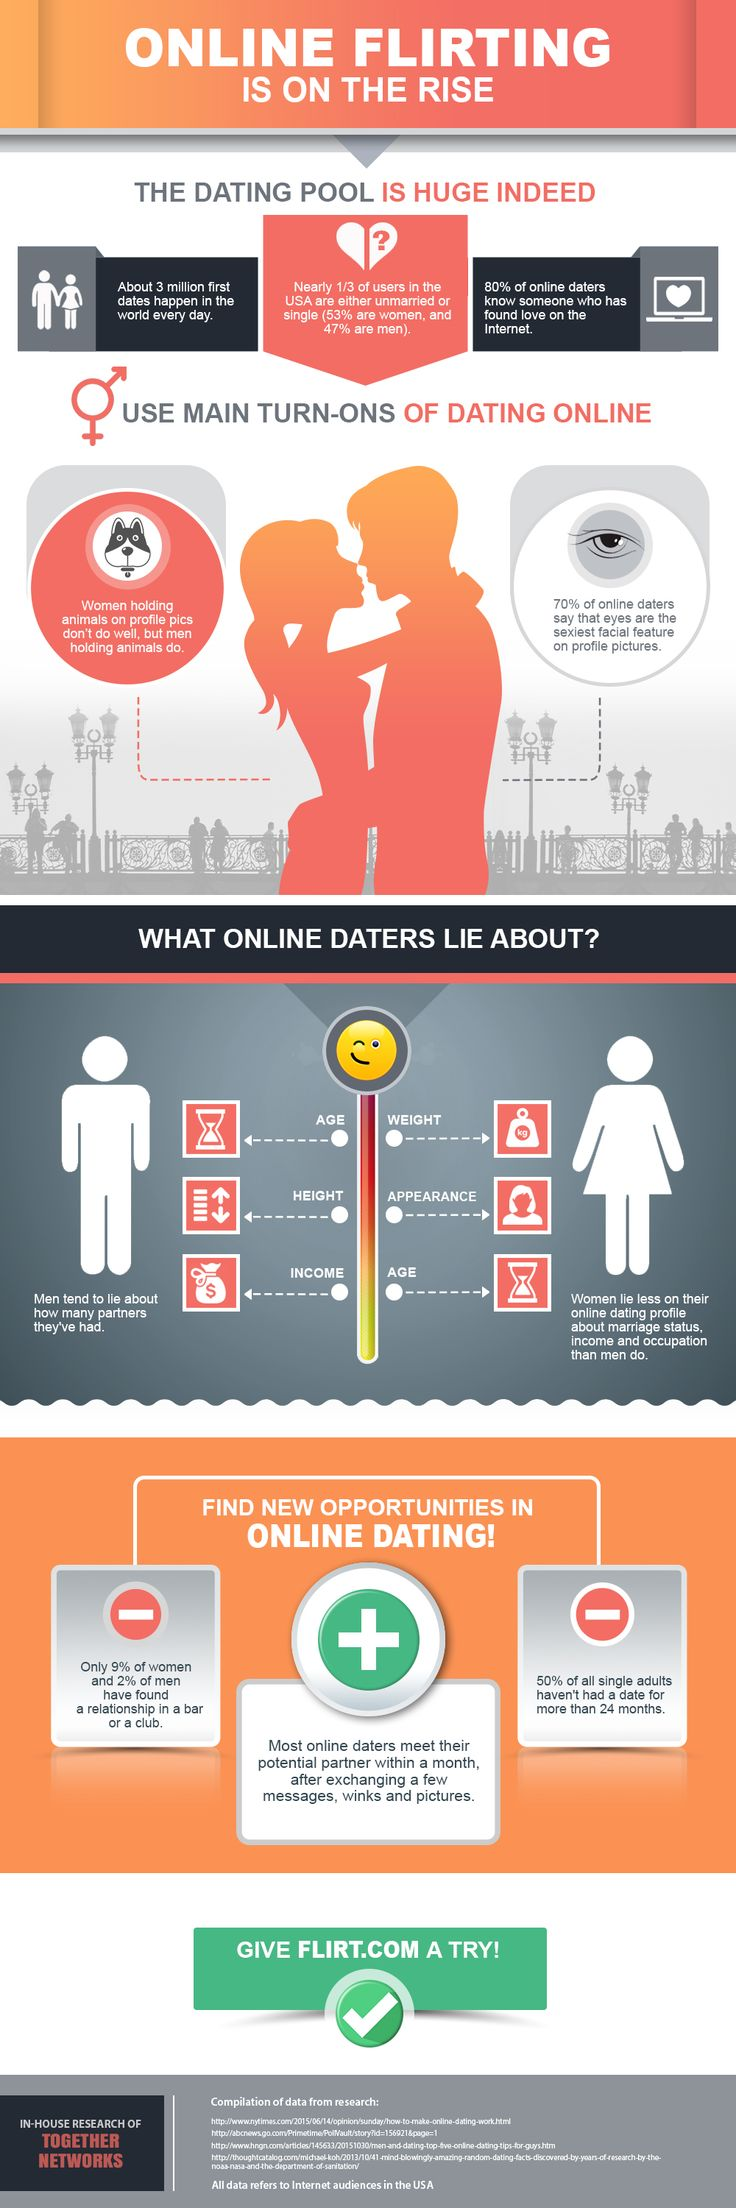 How to be flirty online dating